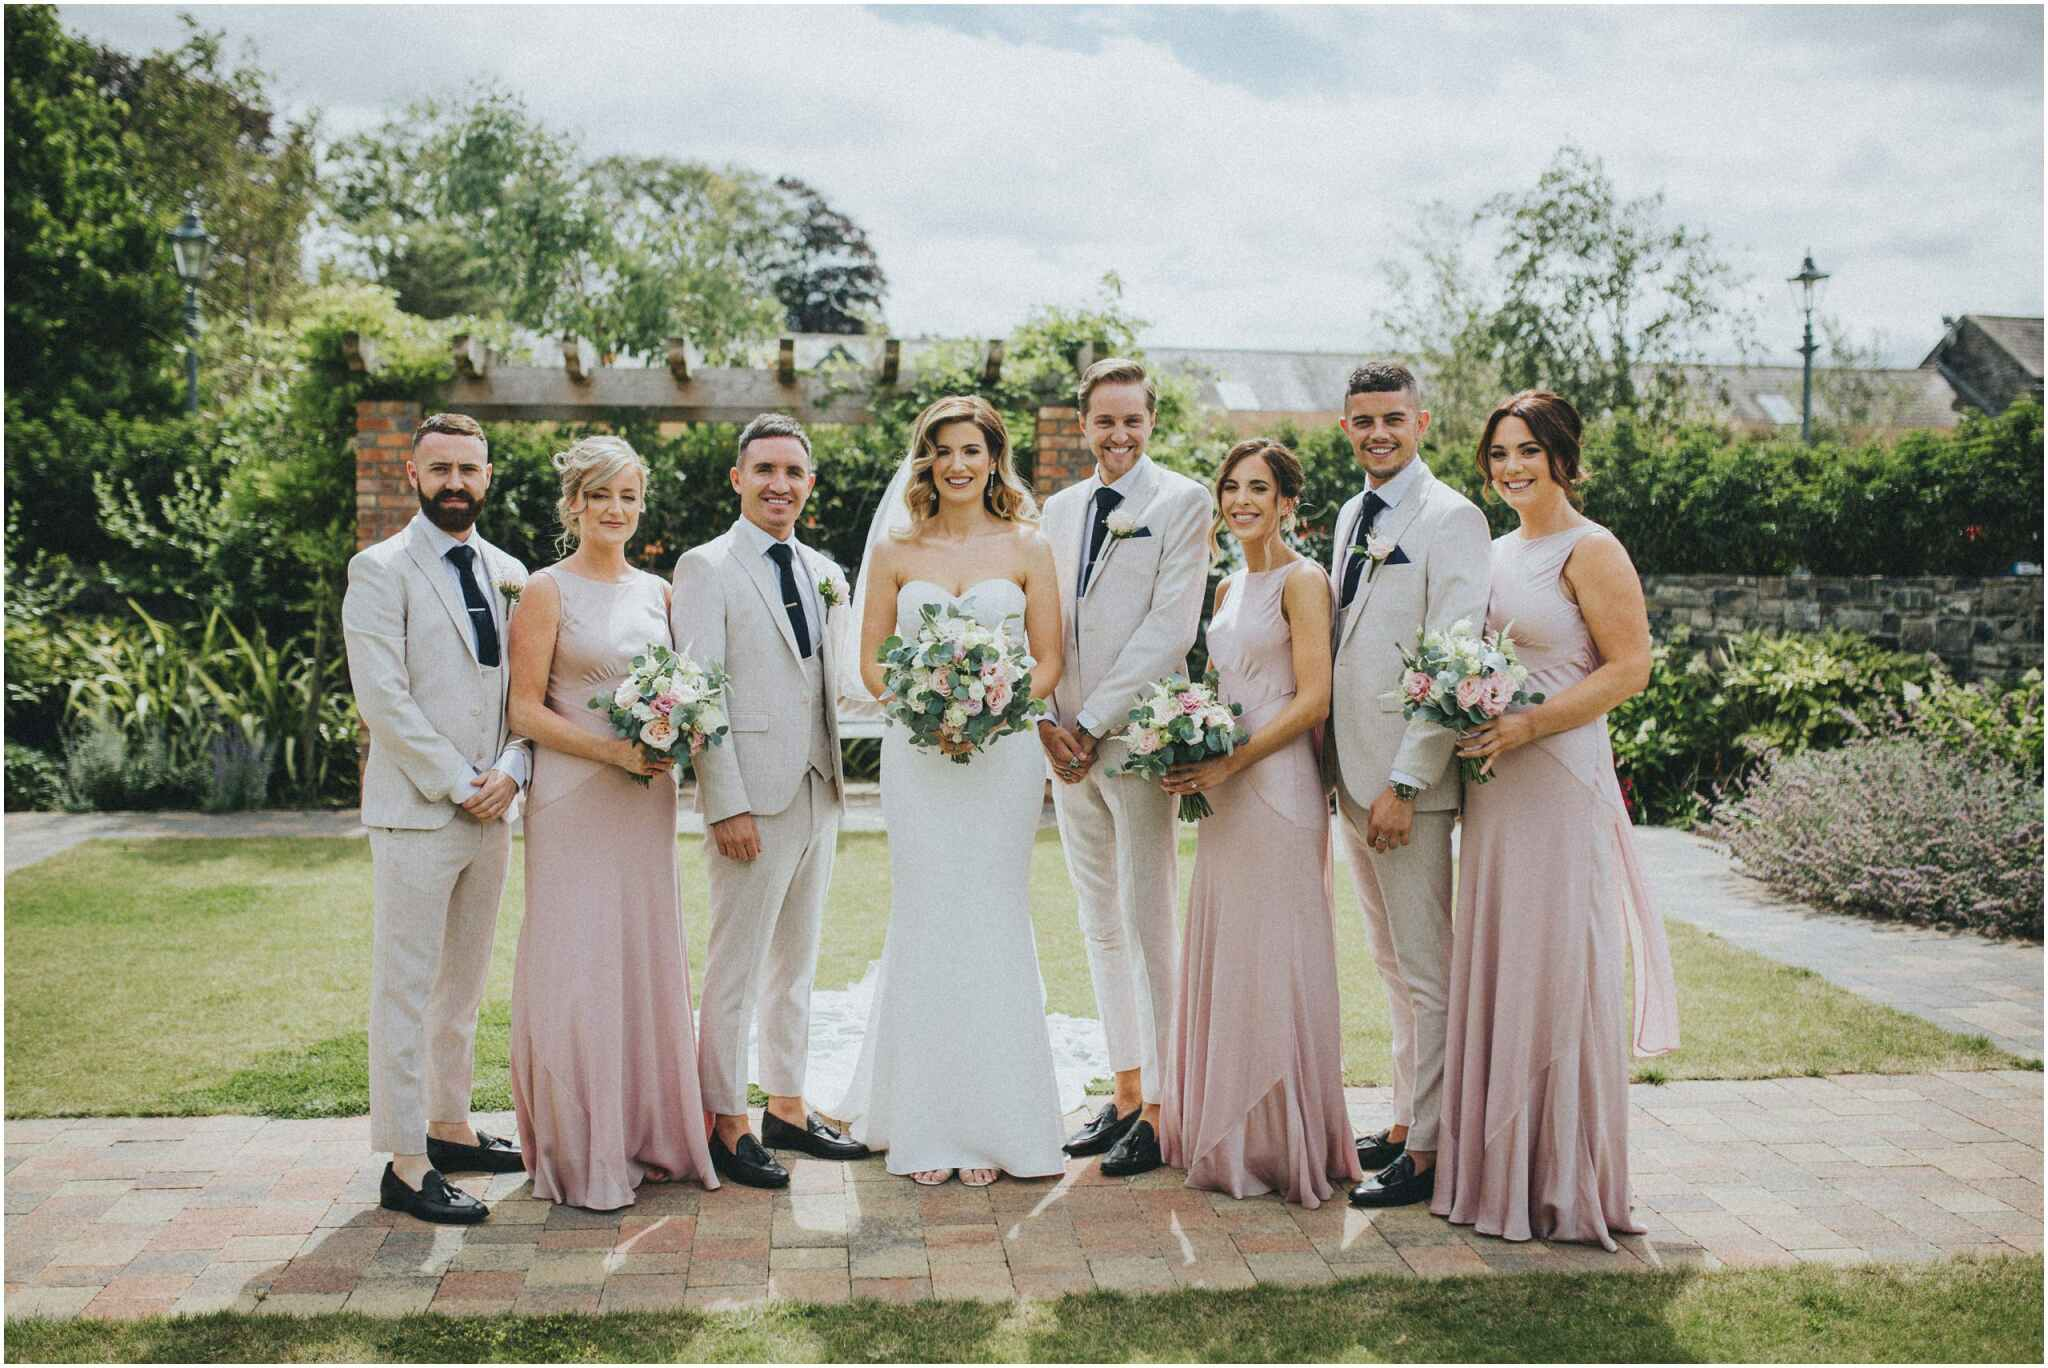 ballymagarvey village wedding 00061 - Fun and Relaxed wedding and elopement photography in Ireland, perfect for adventurous and outdoorsy couples